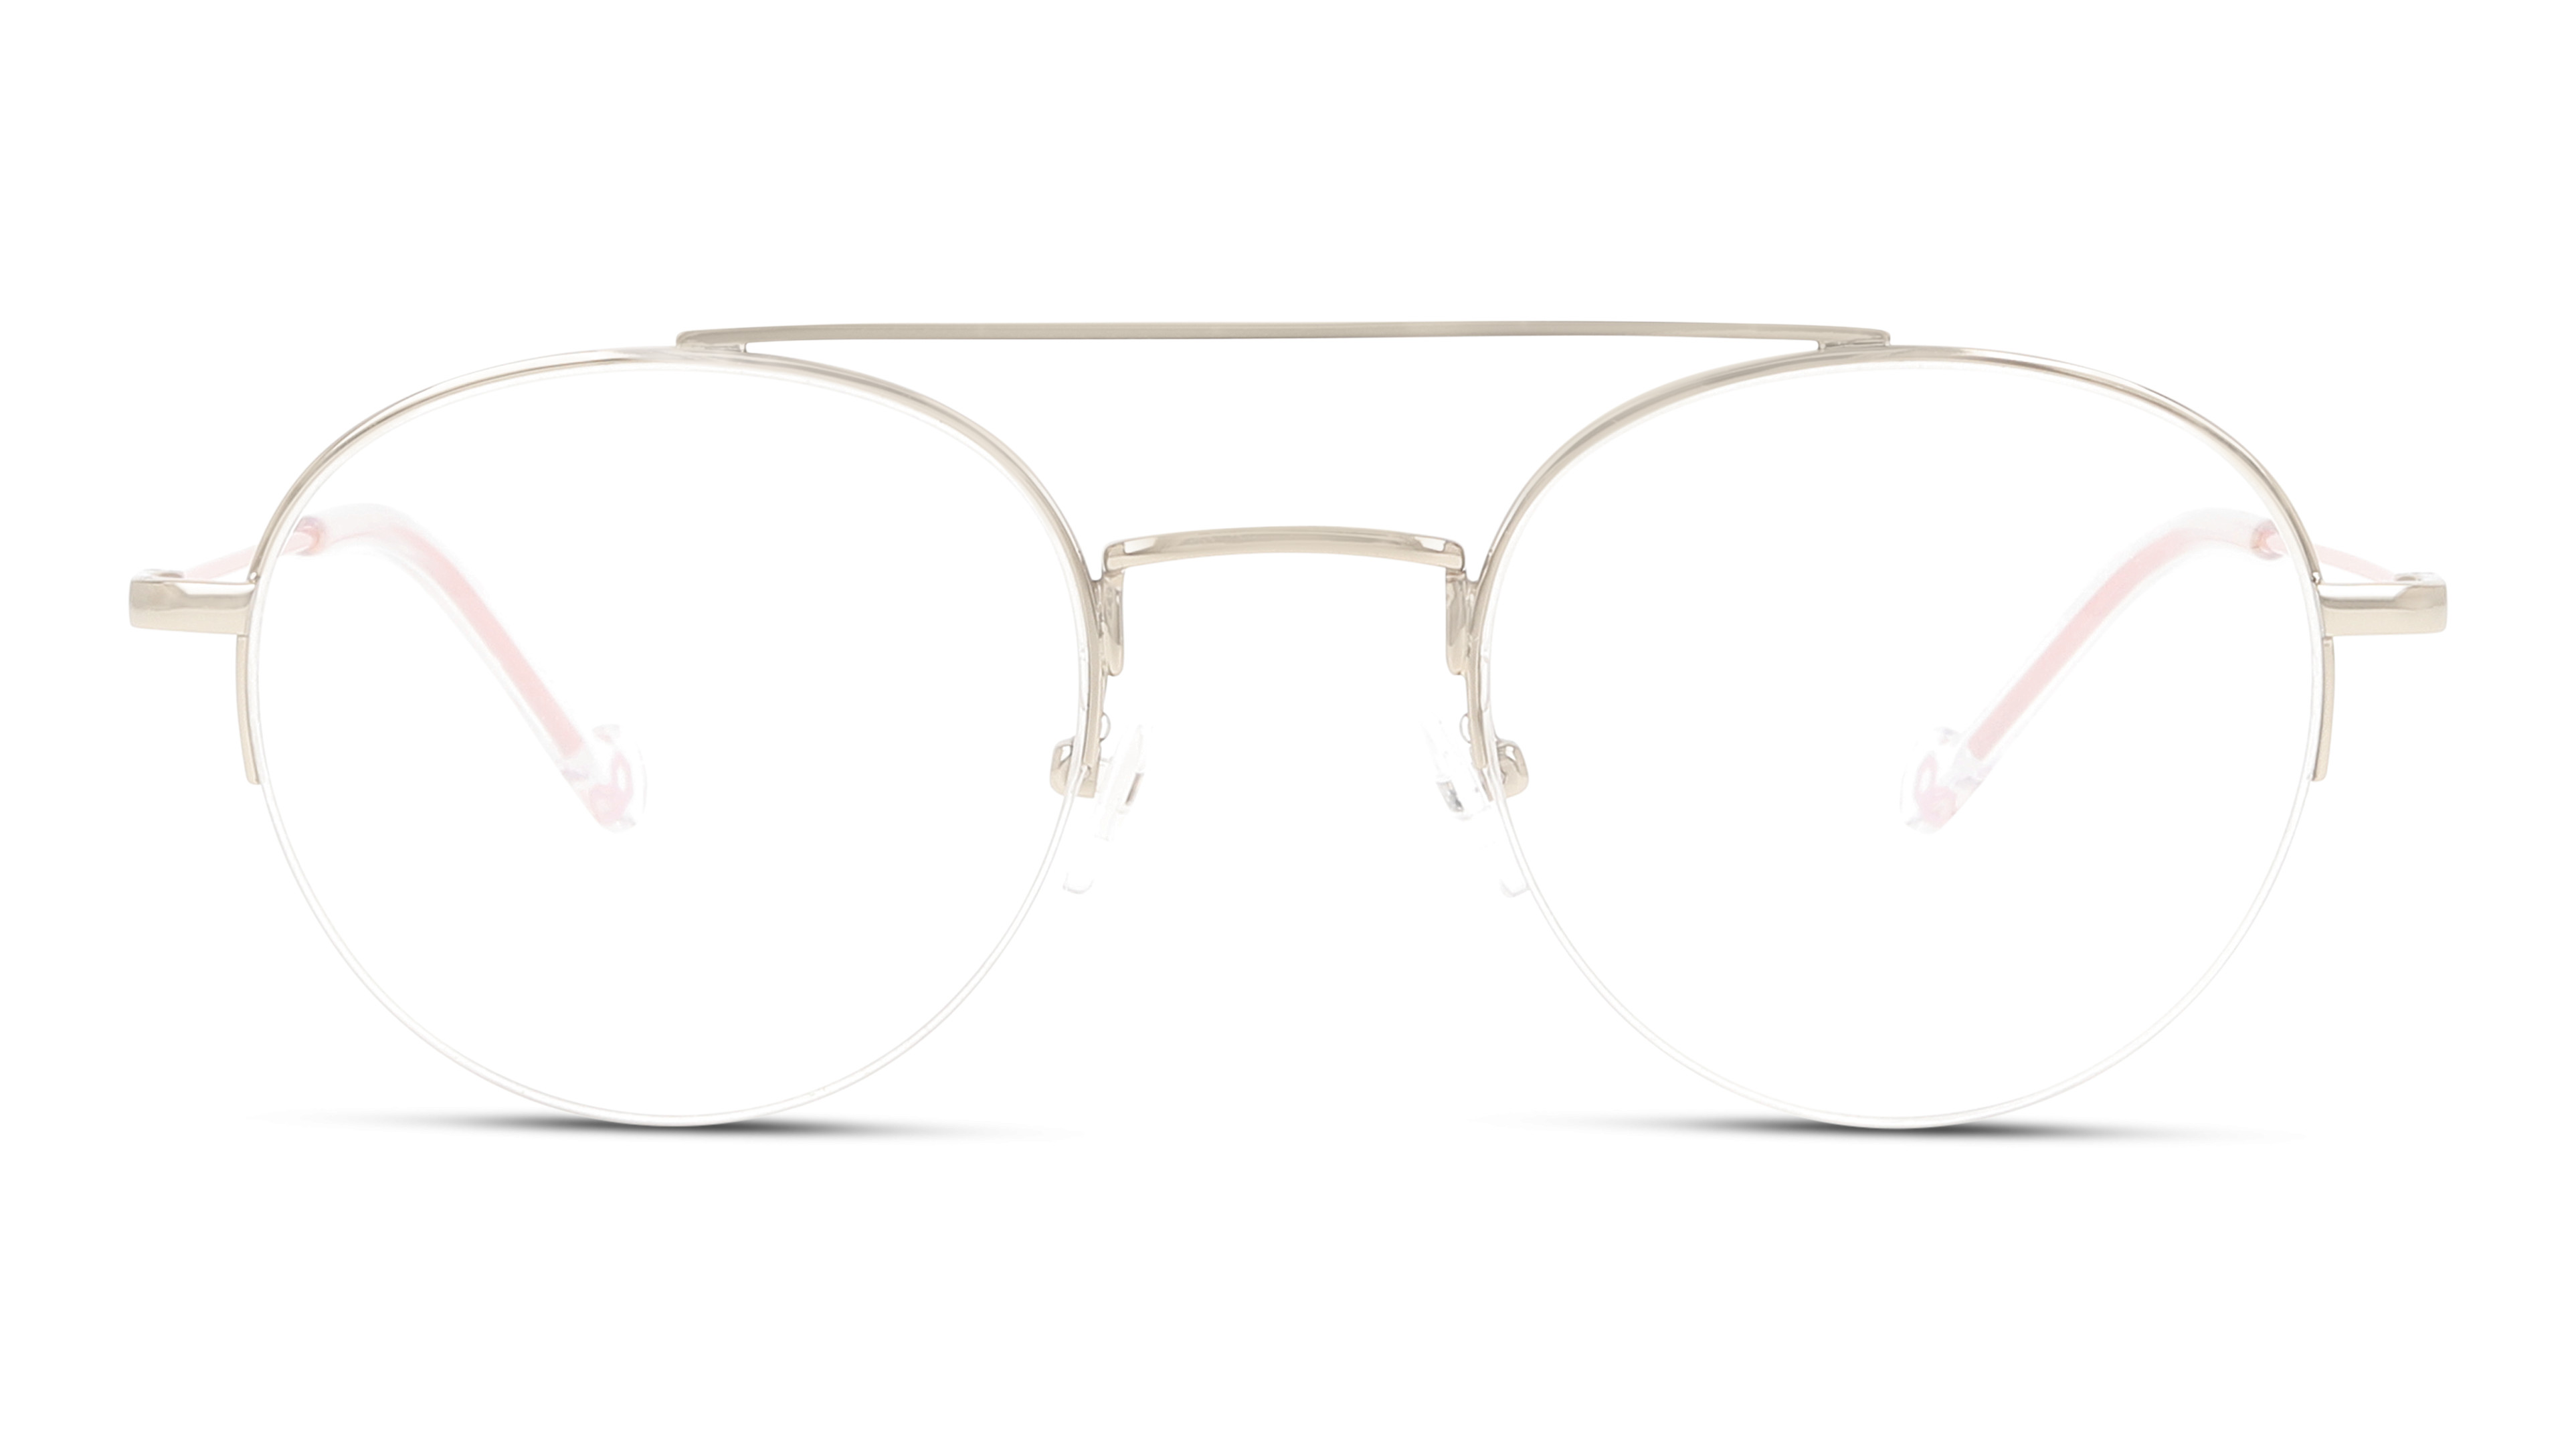 8719154584565-front-01-in-style-iskf16-eyewear-silver-pink